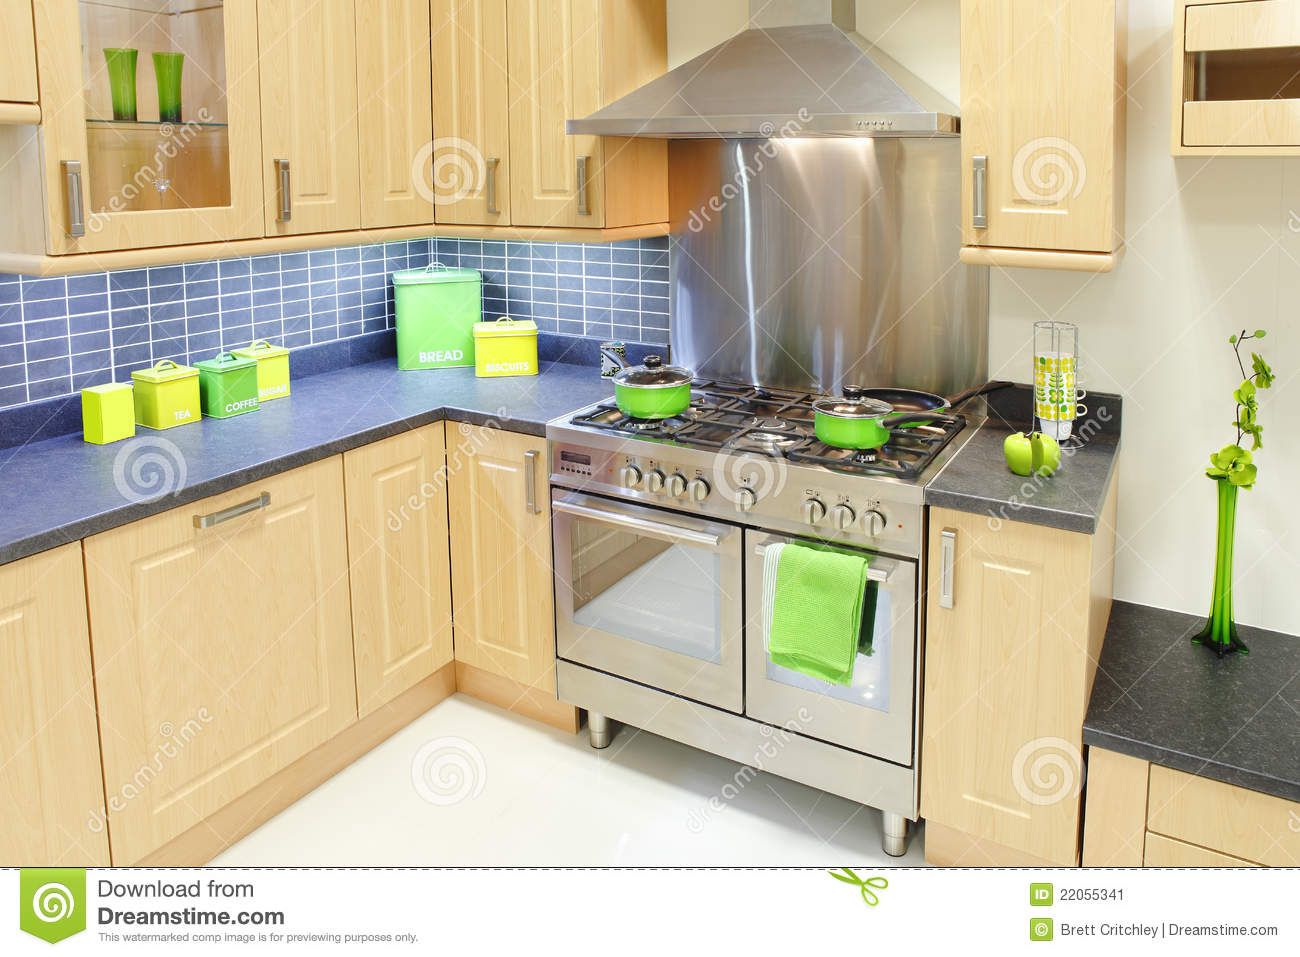 Awesome Preventivo Cucina Online Gallery - Amazing House Design ...